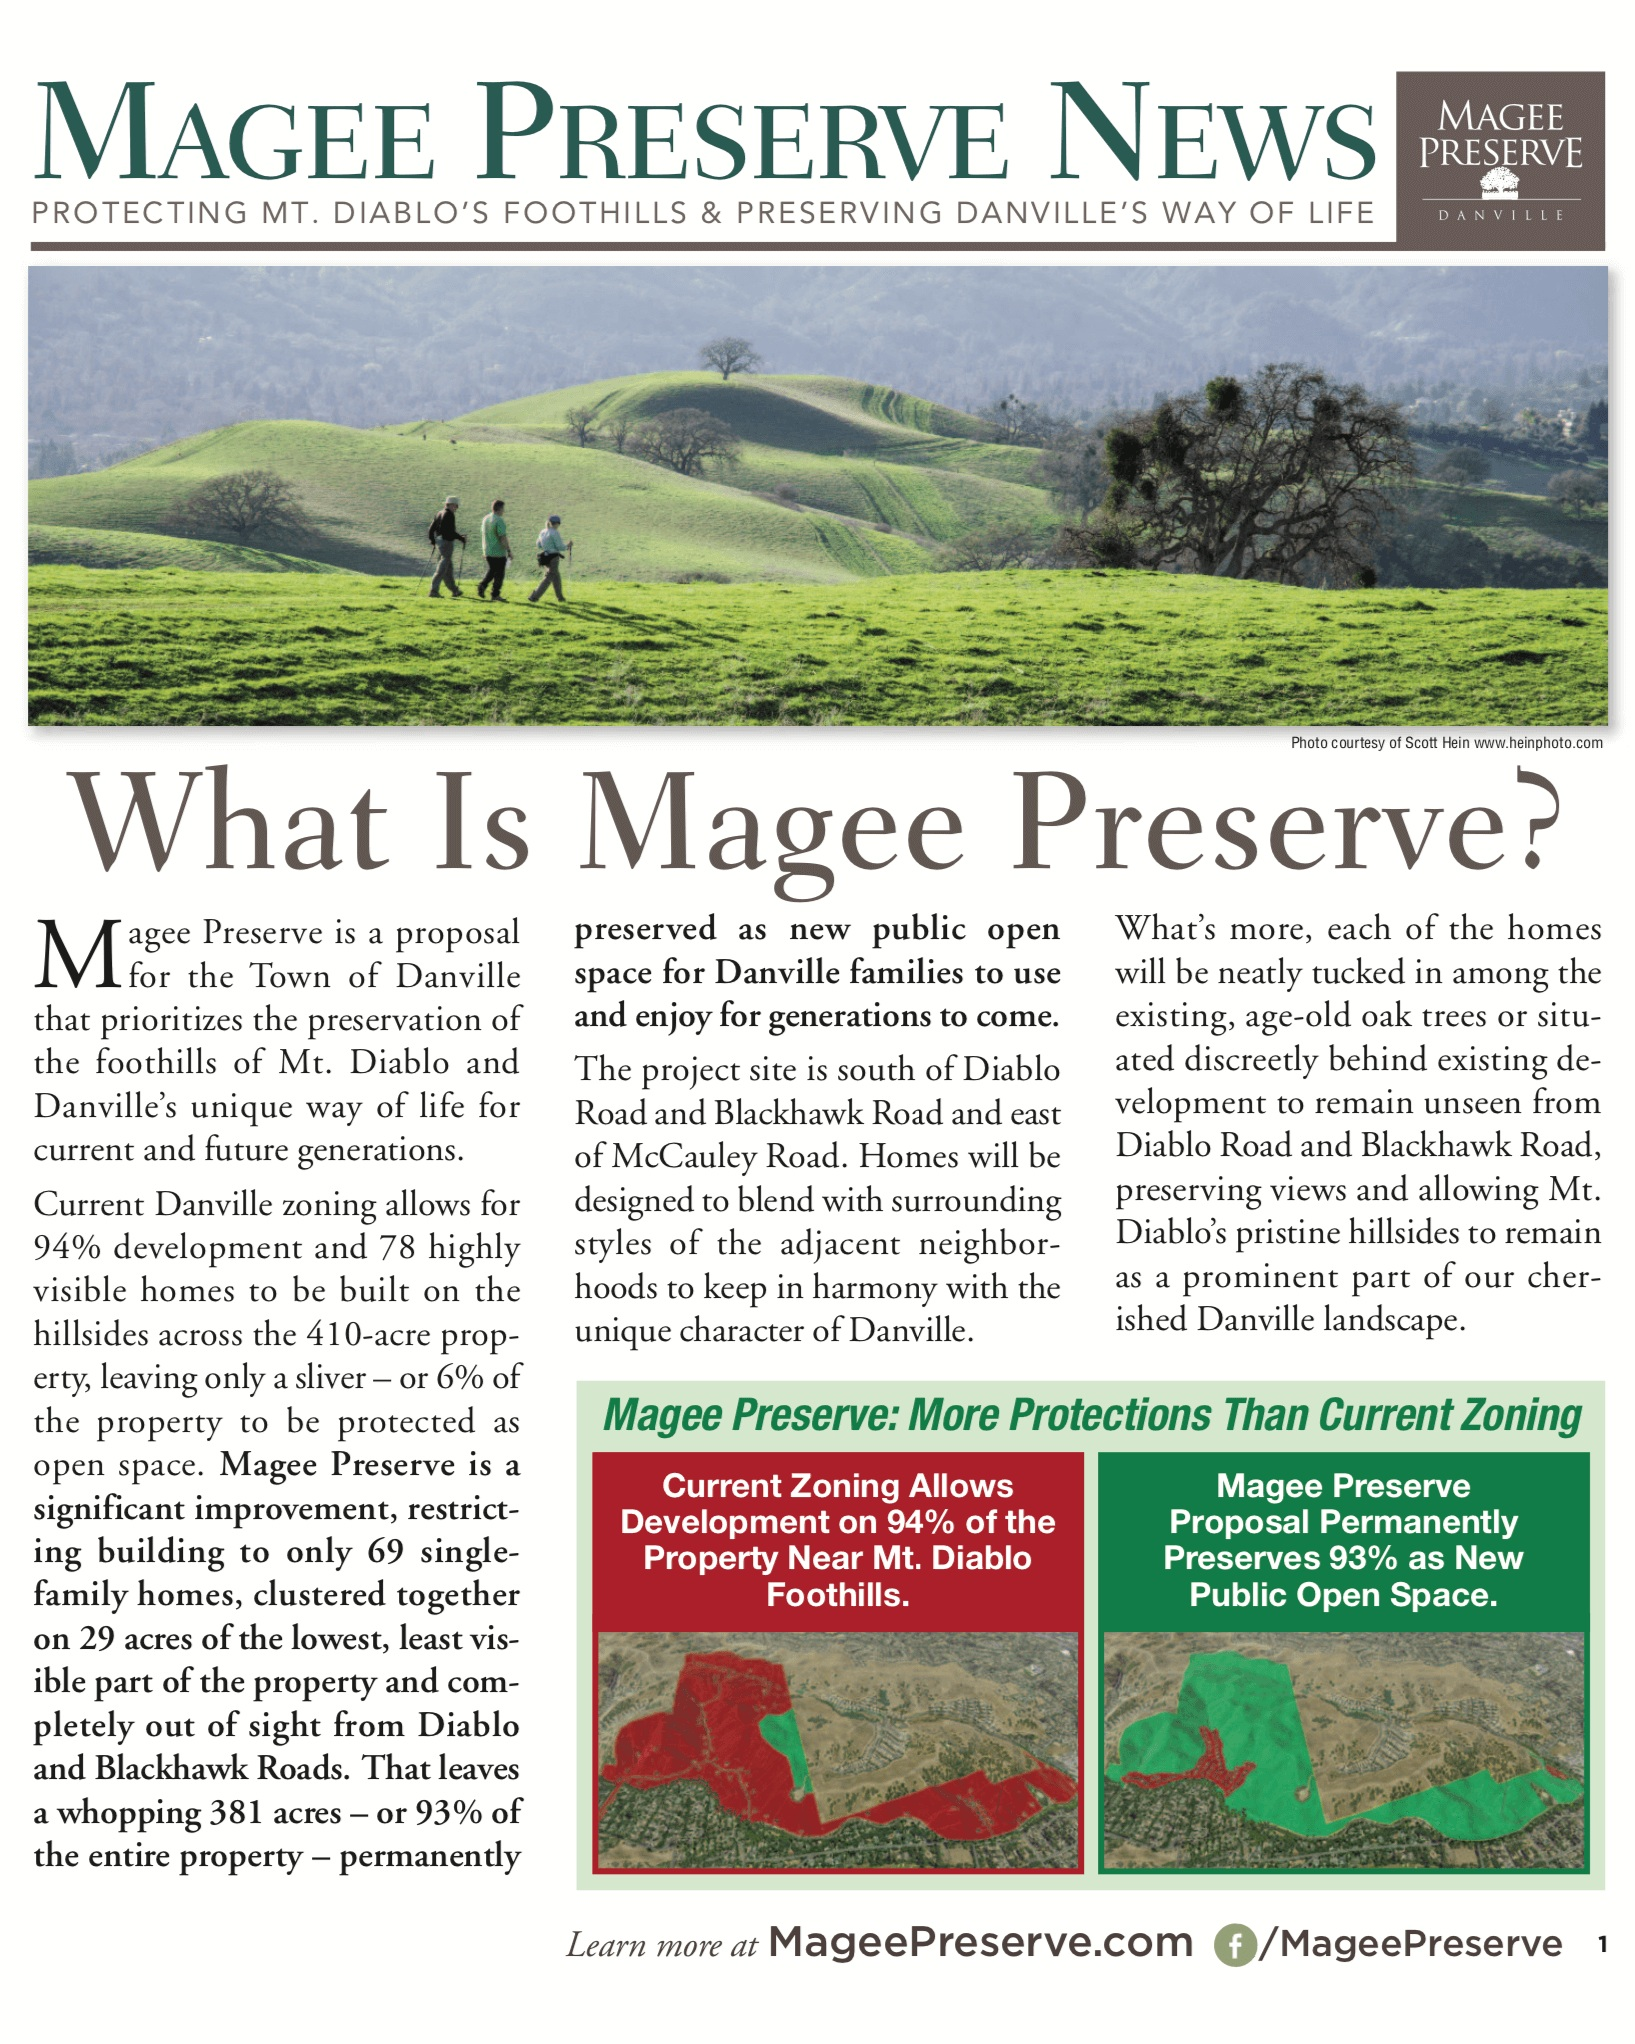 Learn about Magee Preserve, the proposal for the Town of Danville that prioritizes the preservation of the foothills of Mt. Diablo and Danville's unique way of life for current and future generations. -